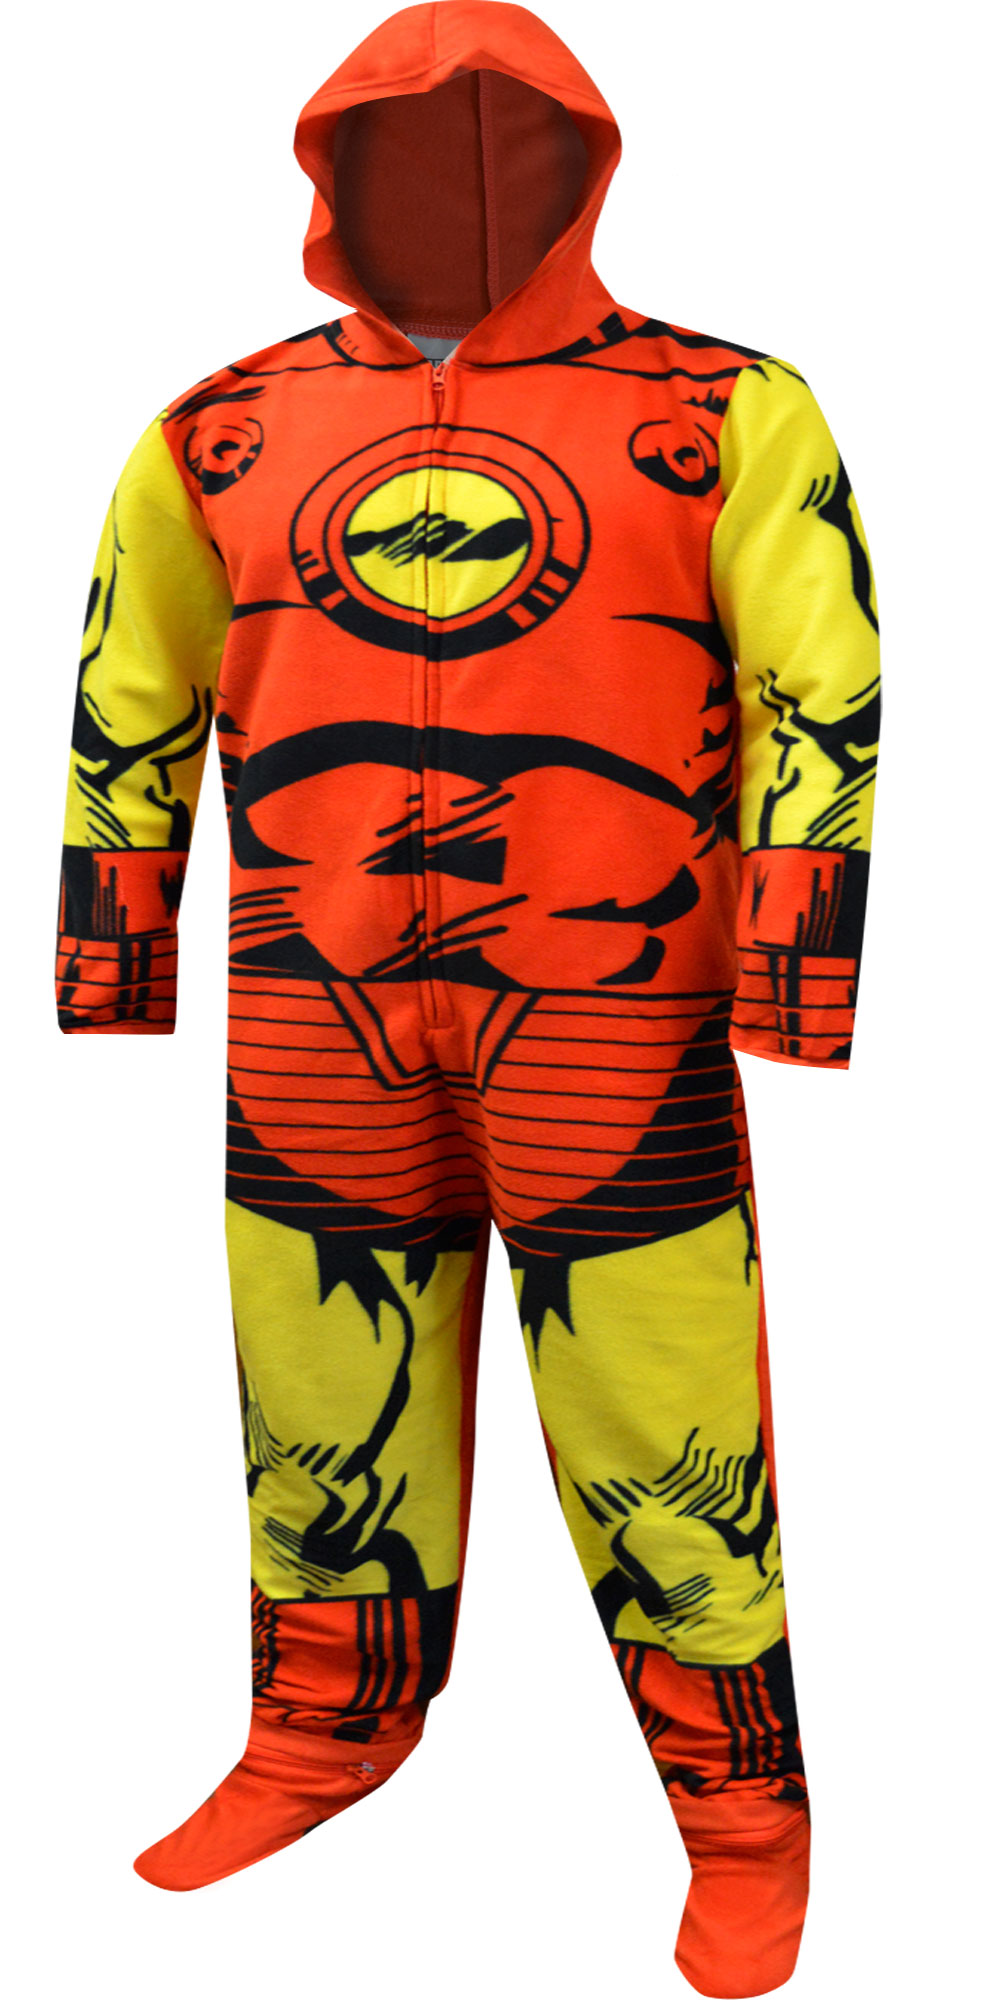 Footie Pajamas for Men- Adult Footed Pajamas and Union Suits 9bd376081